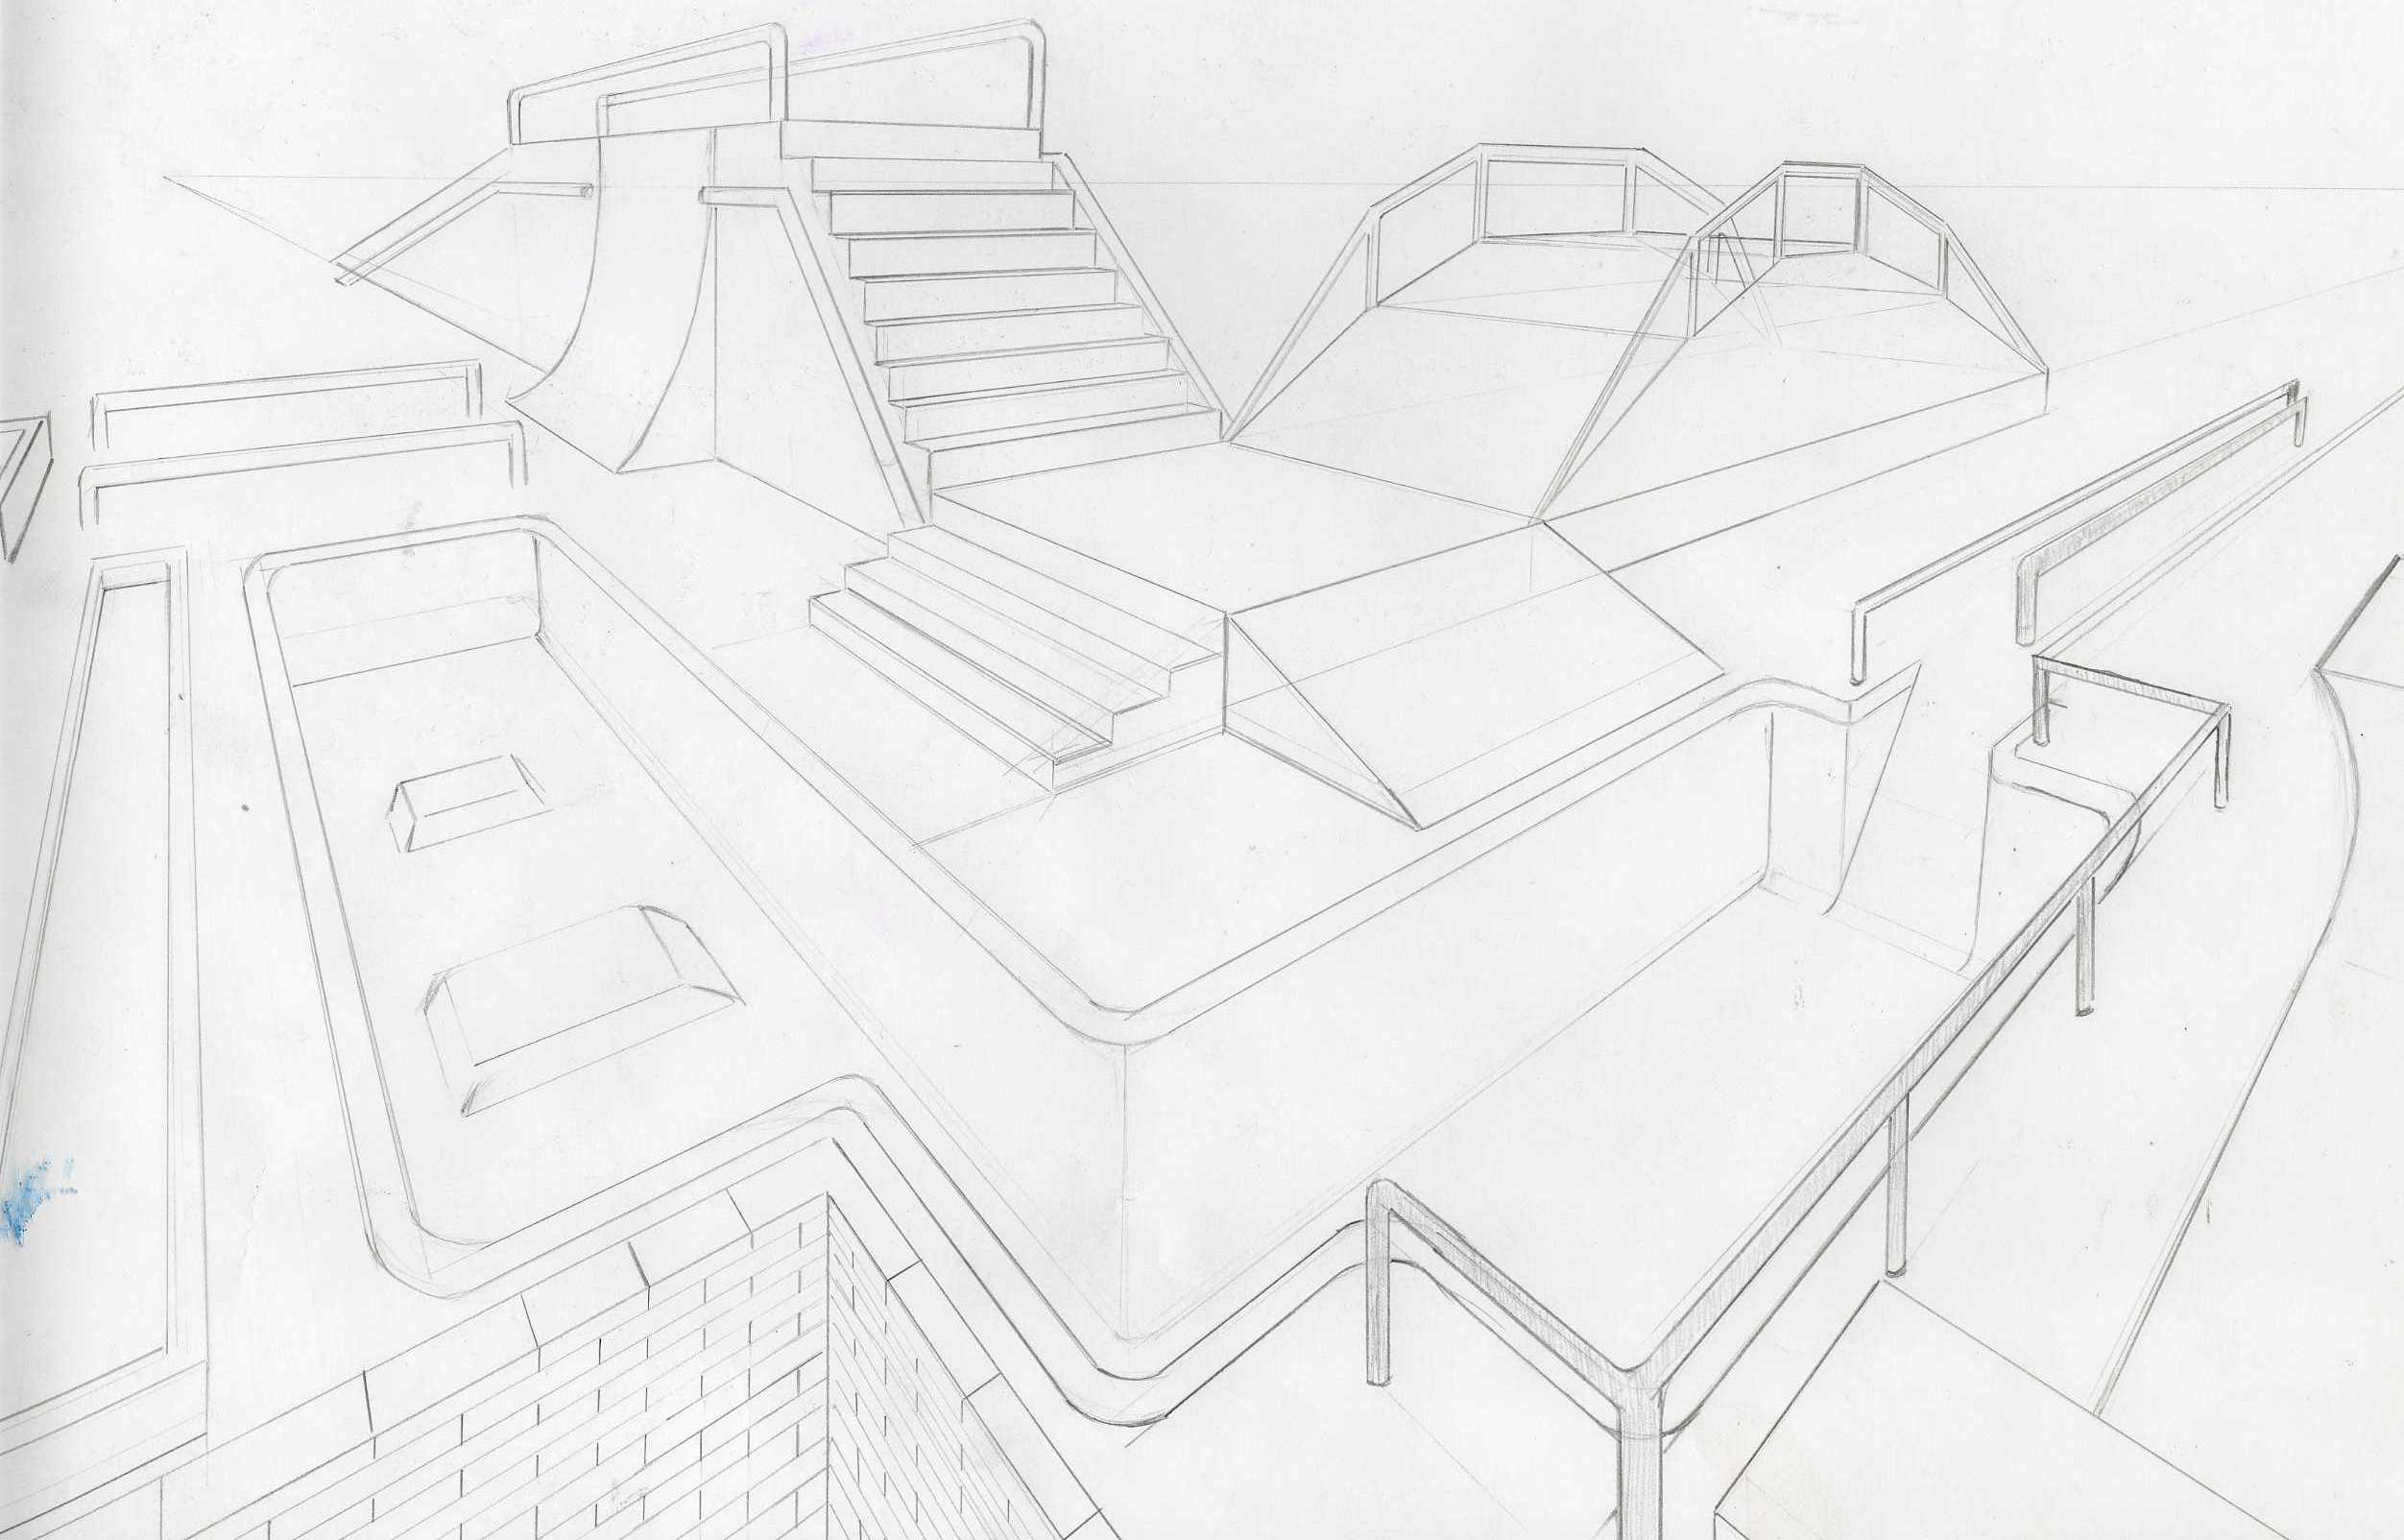 How To Draw Skate Parks